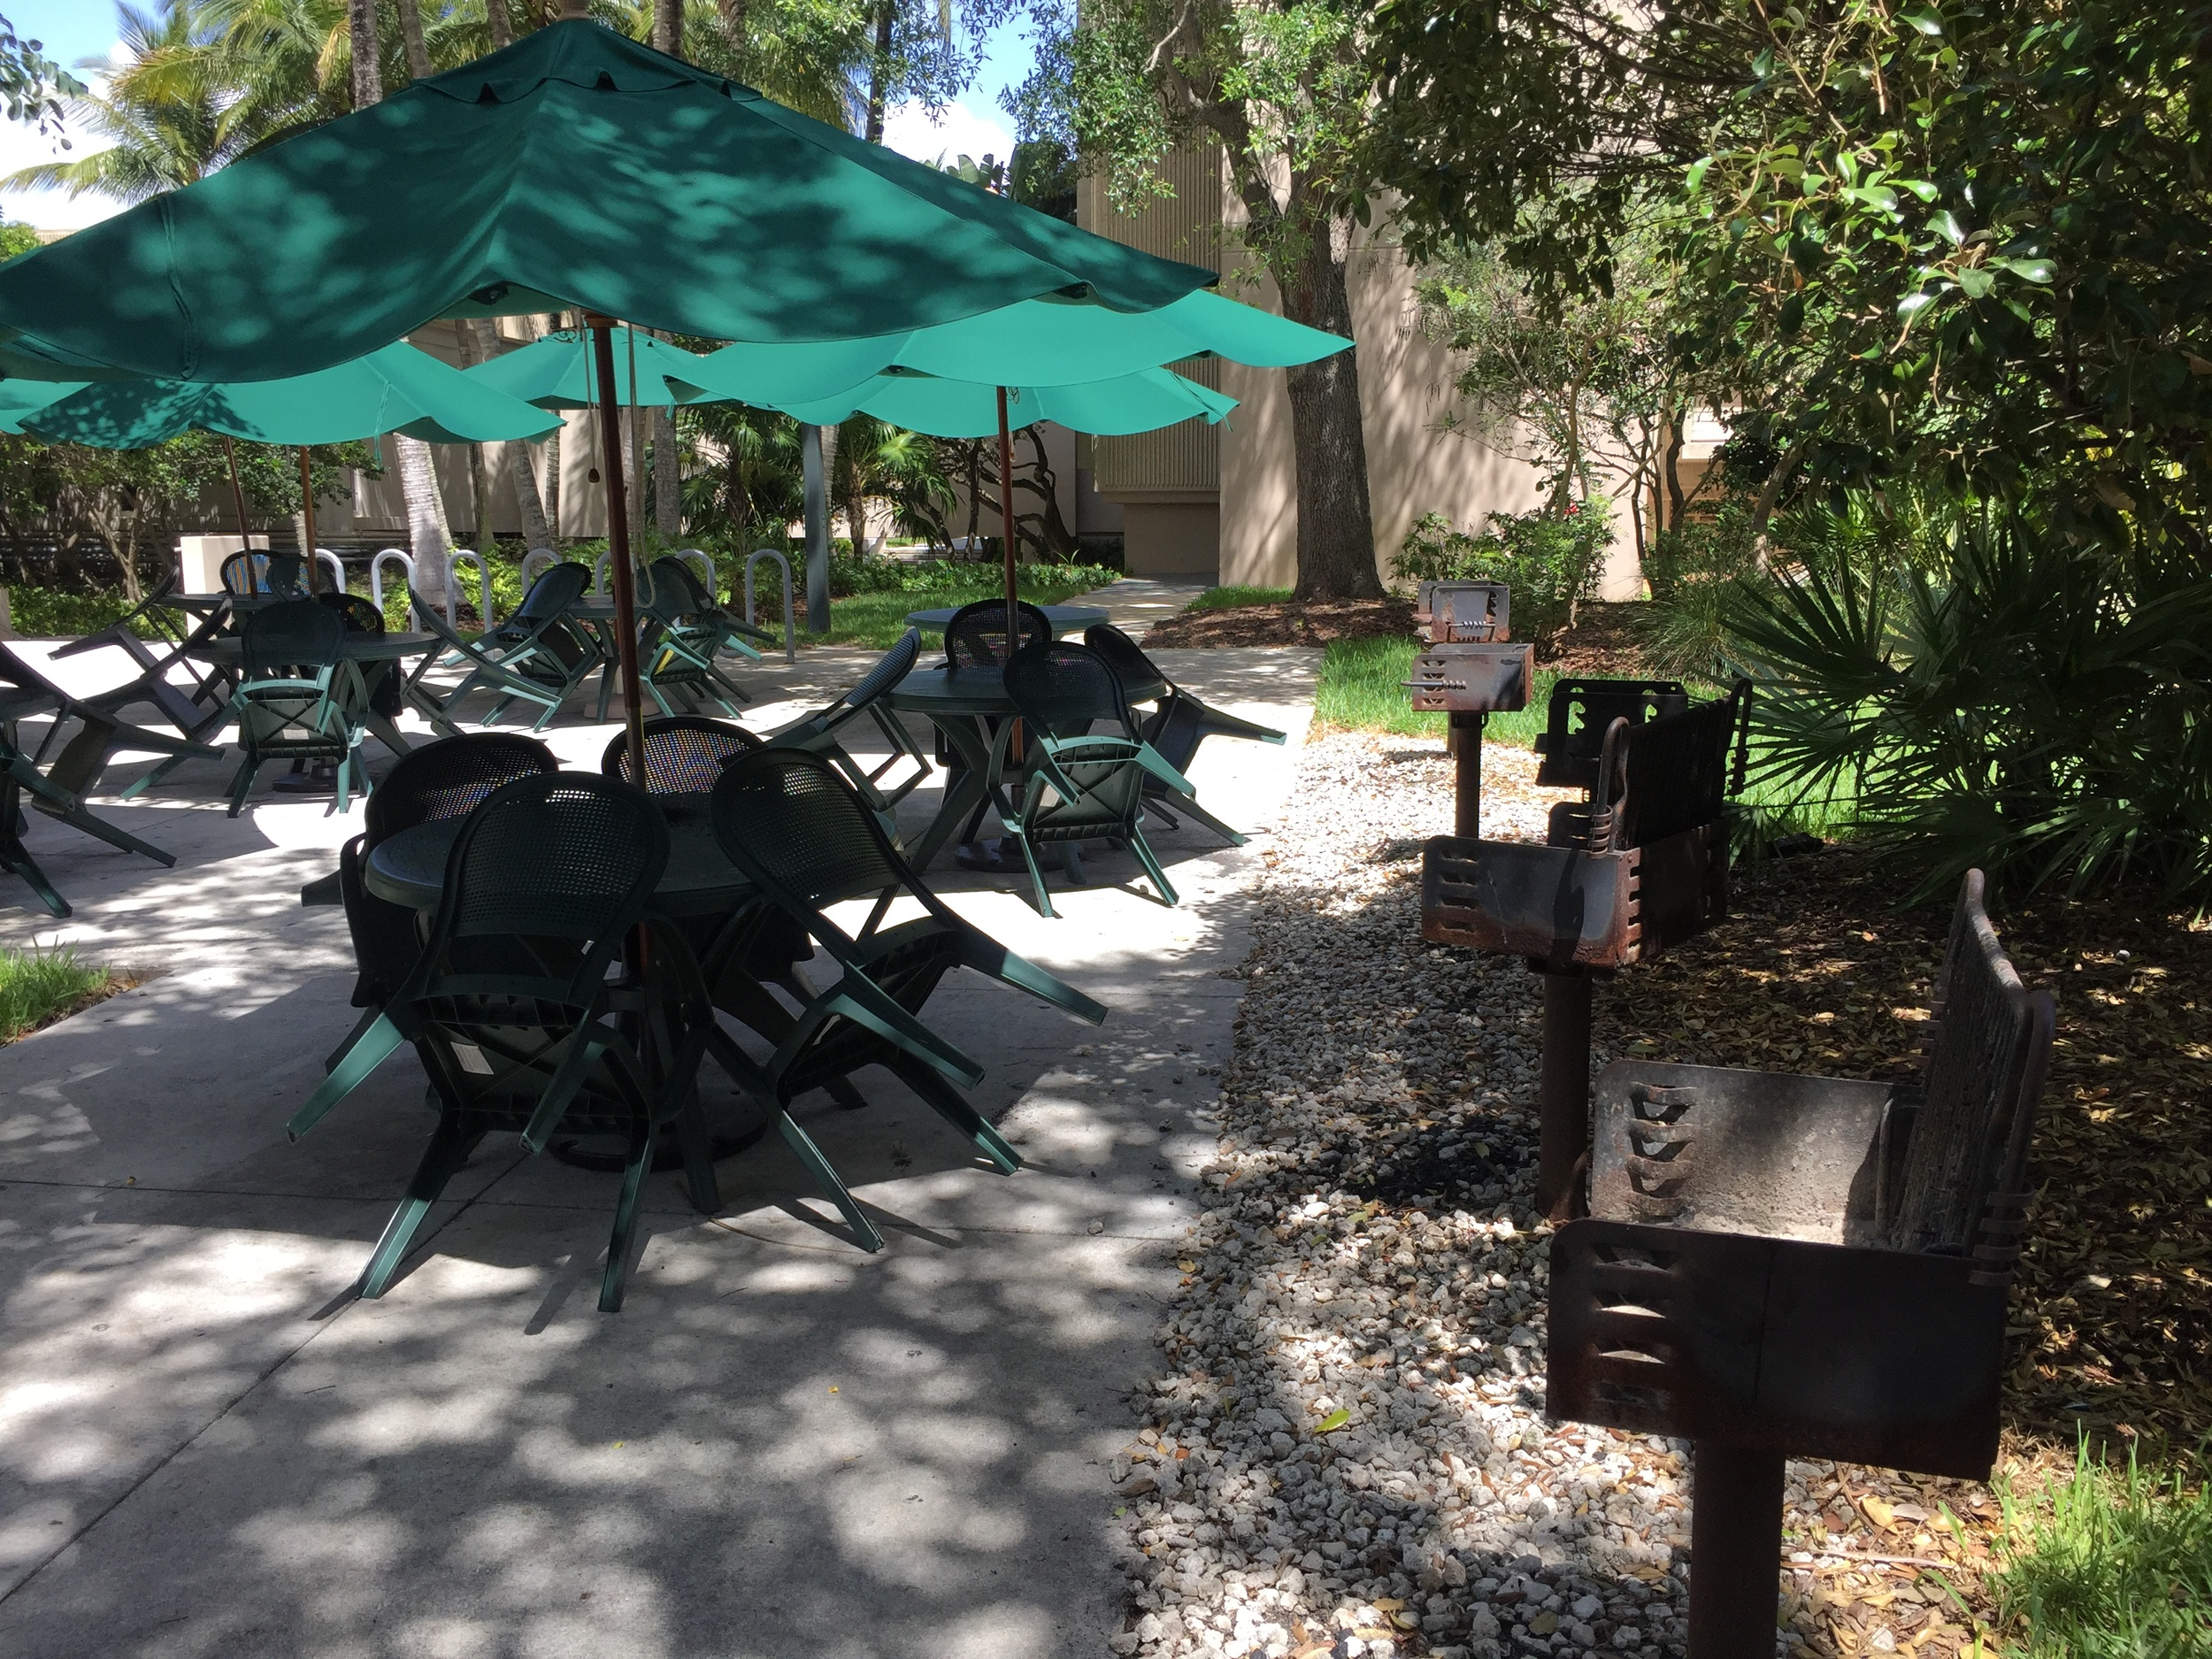 One of the many outdoor barbecue areas on campus